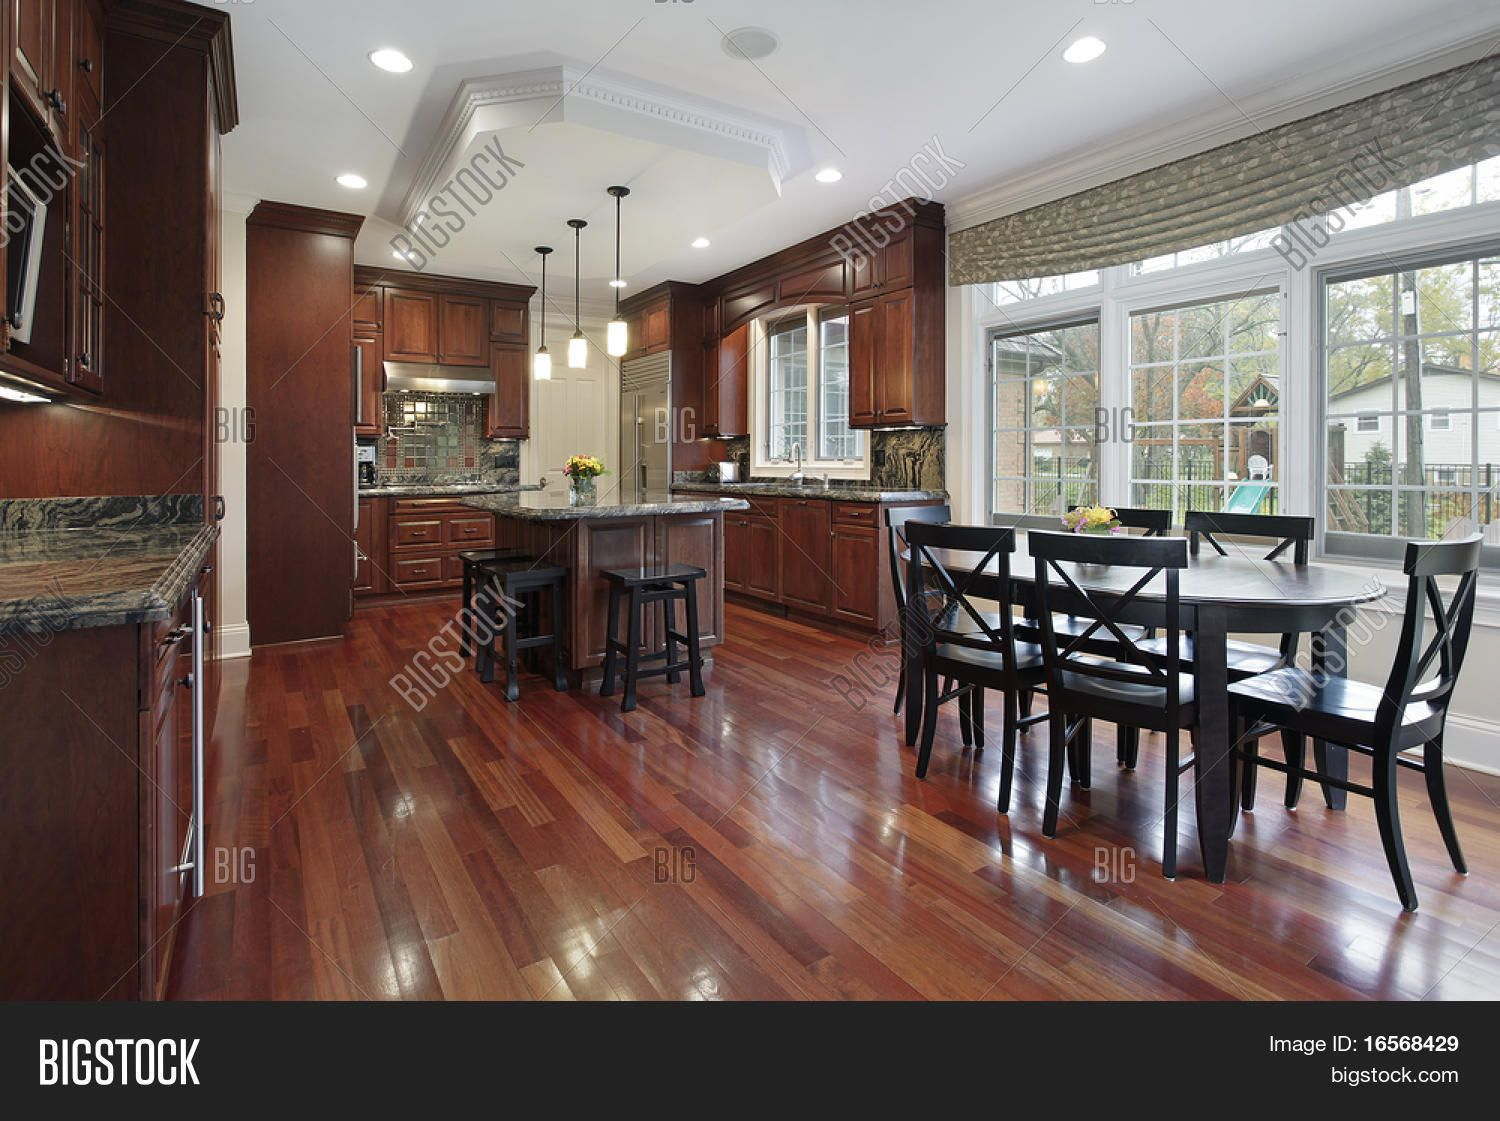 Luxury Kitchens With Cherry Cabinets And Wood Floors Kitchen In Luxury Home With Cherry W Hardwood Floors In Kitchen Luxury Kitchen Design Dark Wood Kitchens